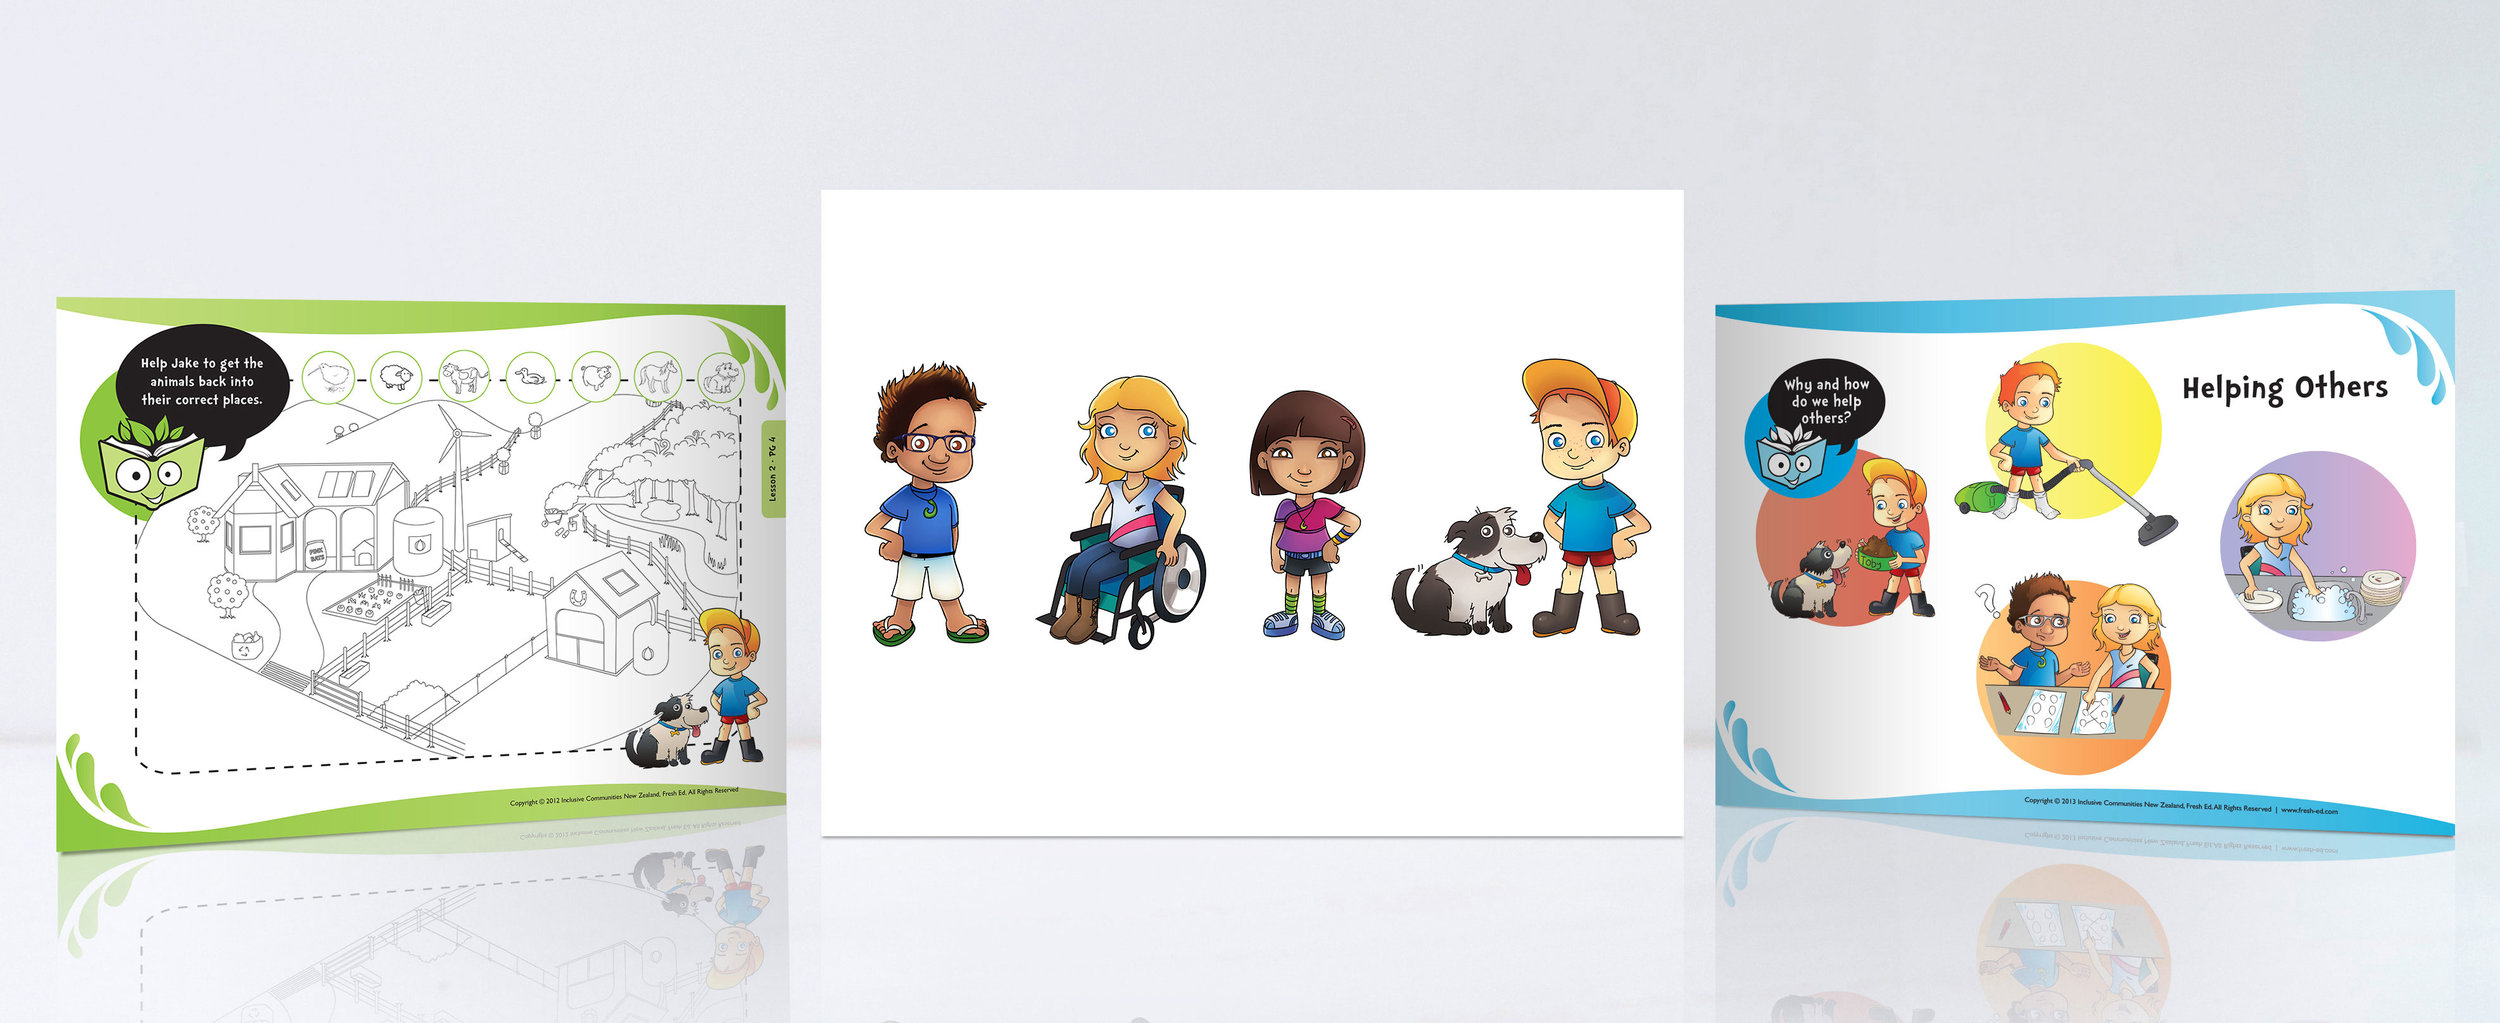 Fresh Ed Inclusive Education Programme Illustration Commercial